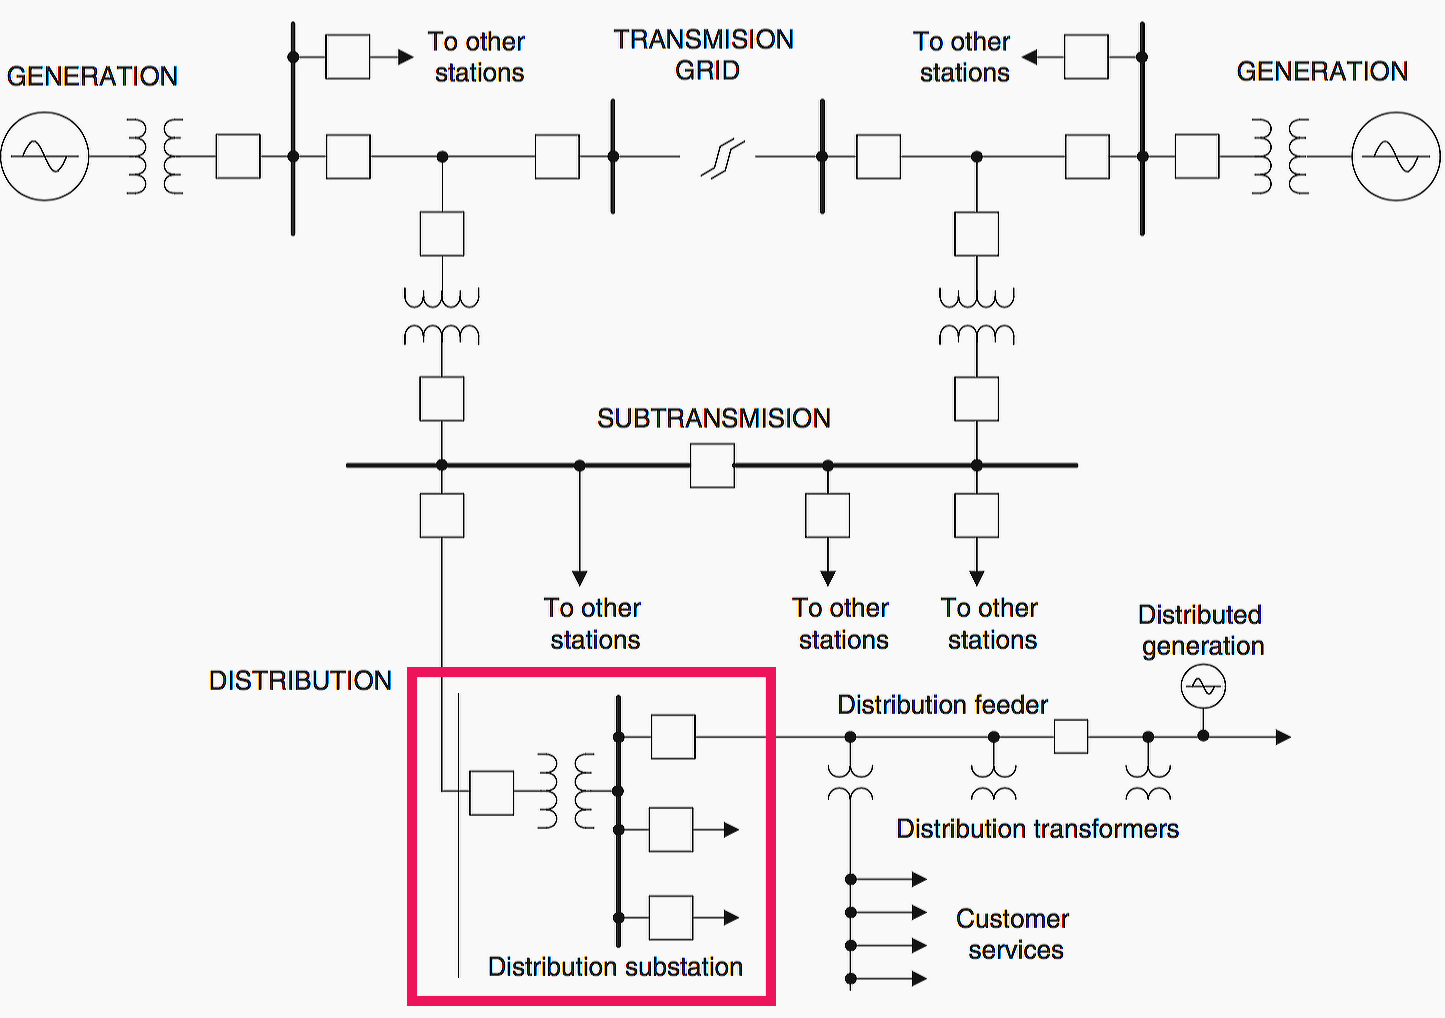 medium resolution of power plant one line diagram wiring diagram sample pv solar power plant diagram example of single line diagram